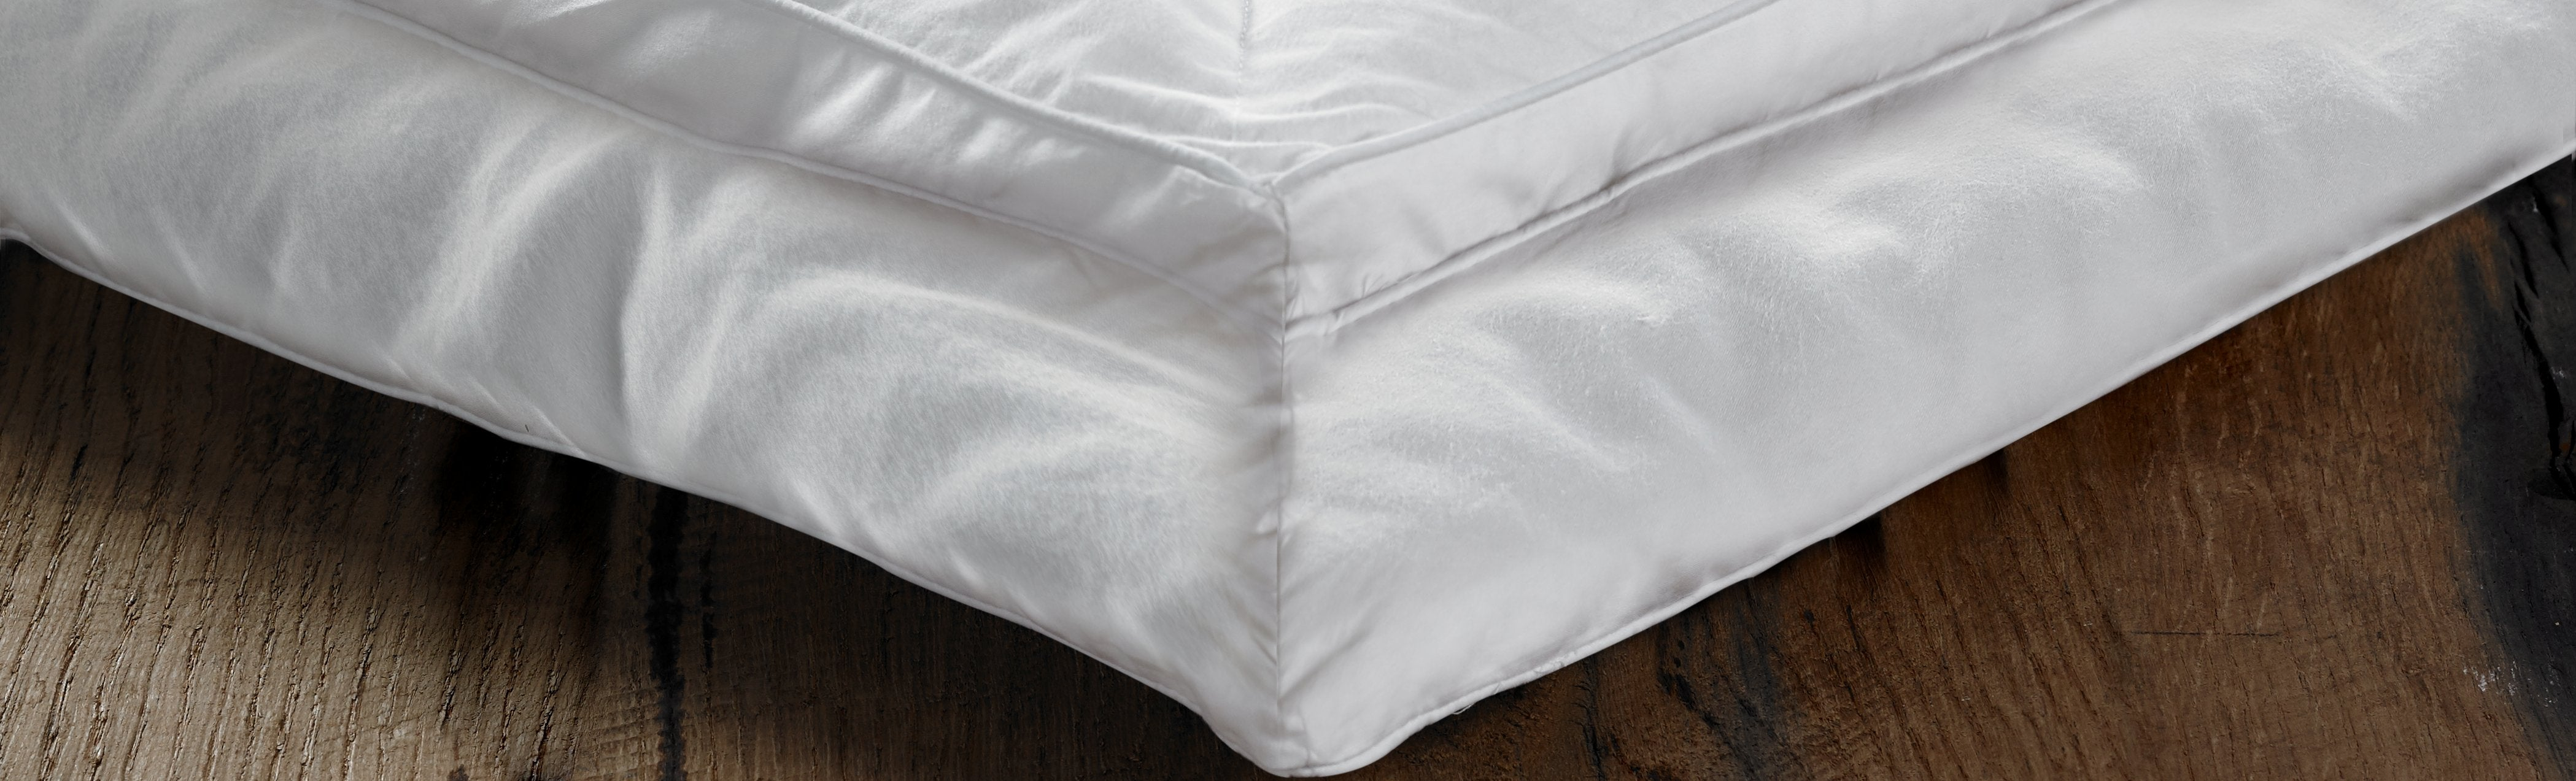 Luxury Natural Mattress Toppers - Feather & Down, Down Combo